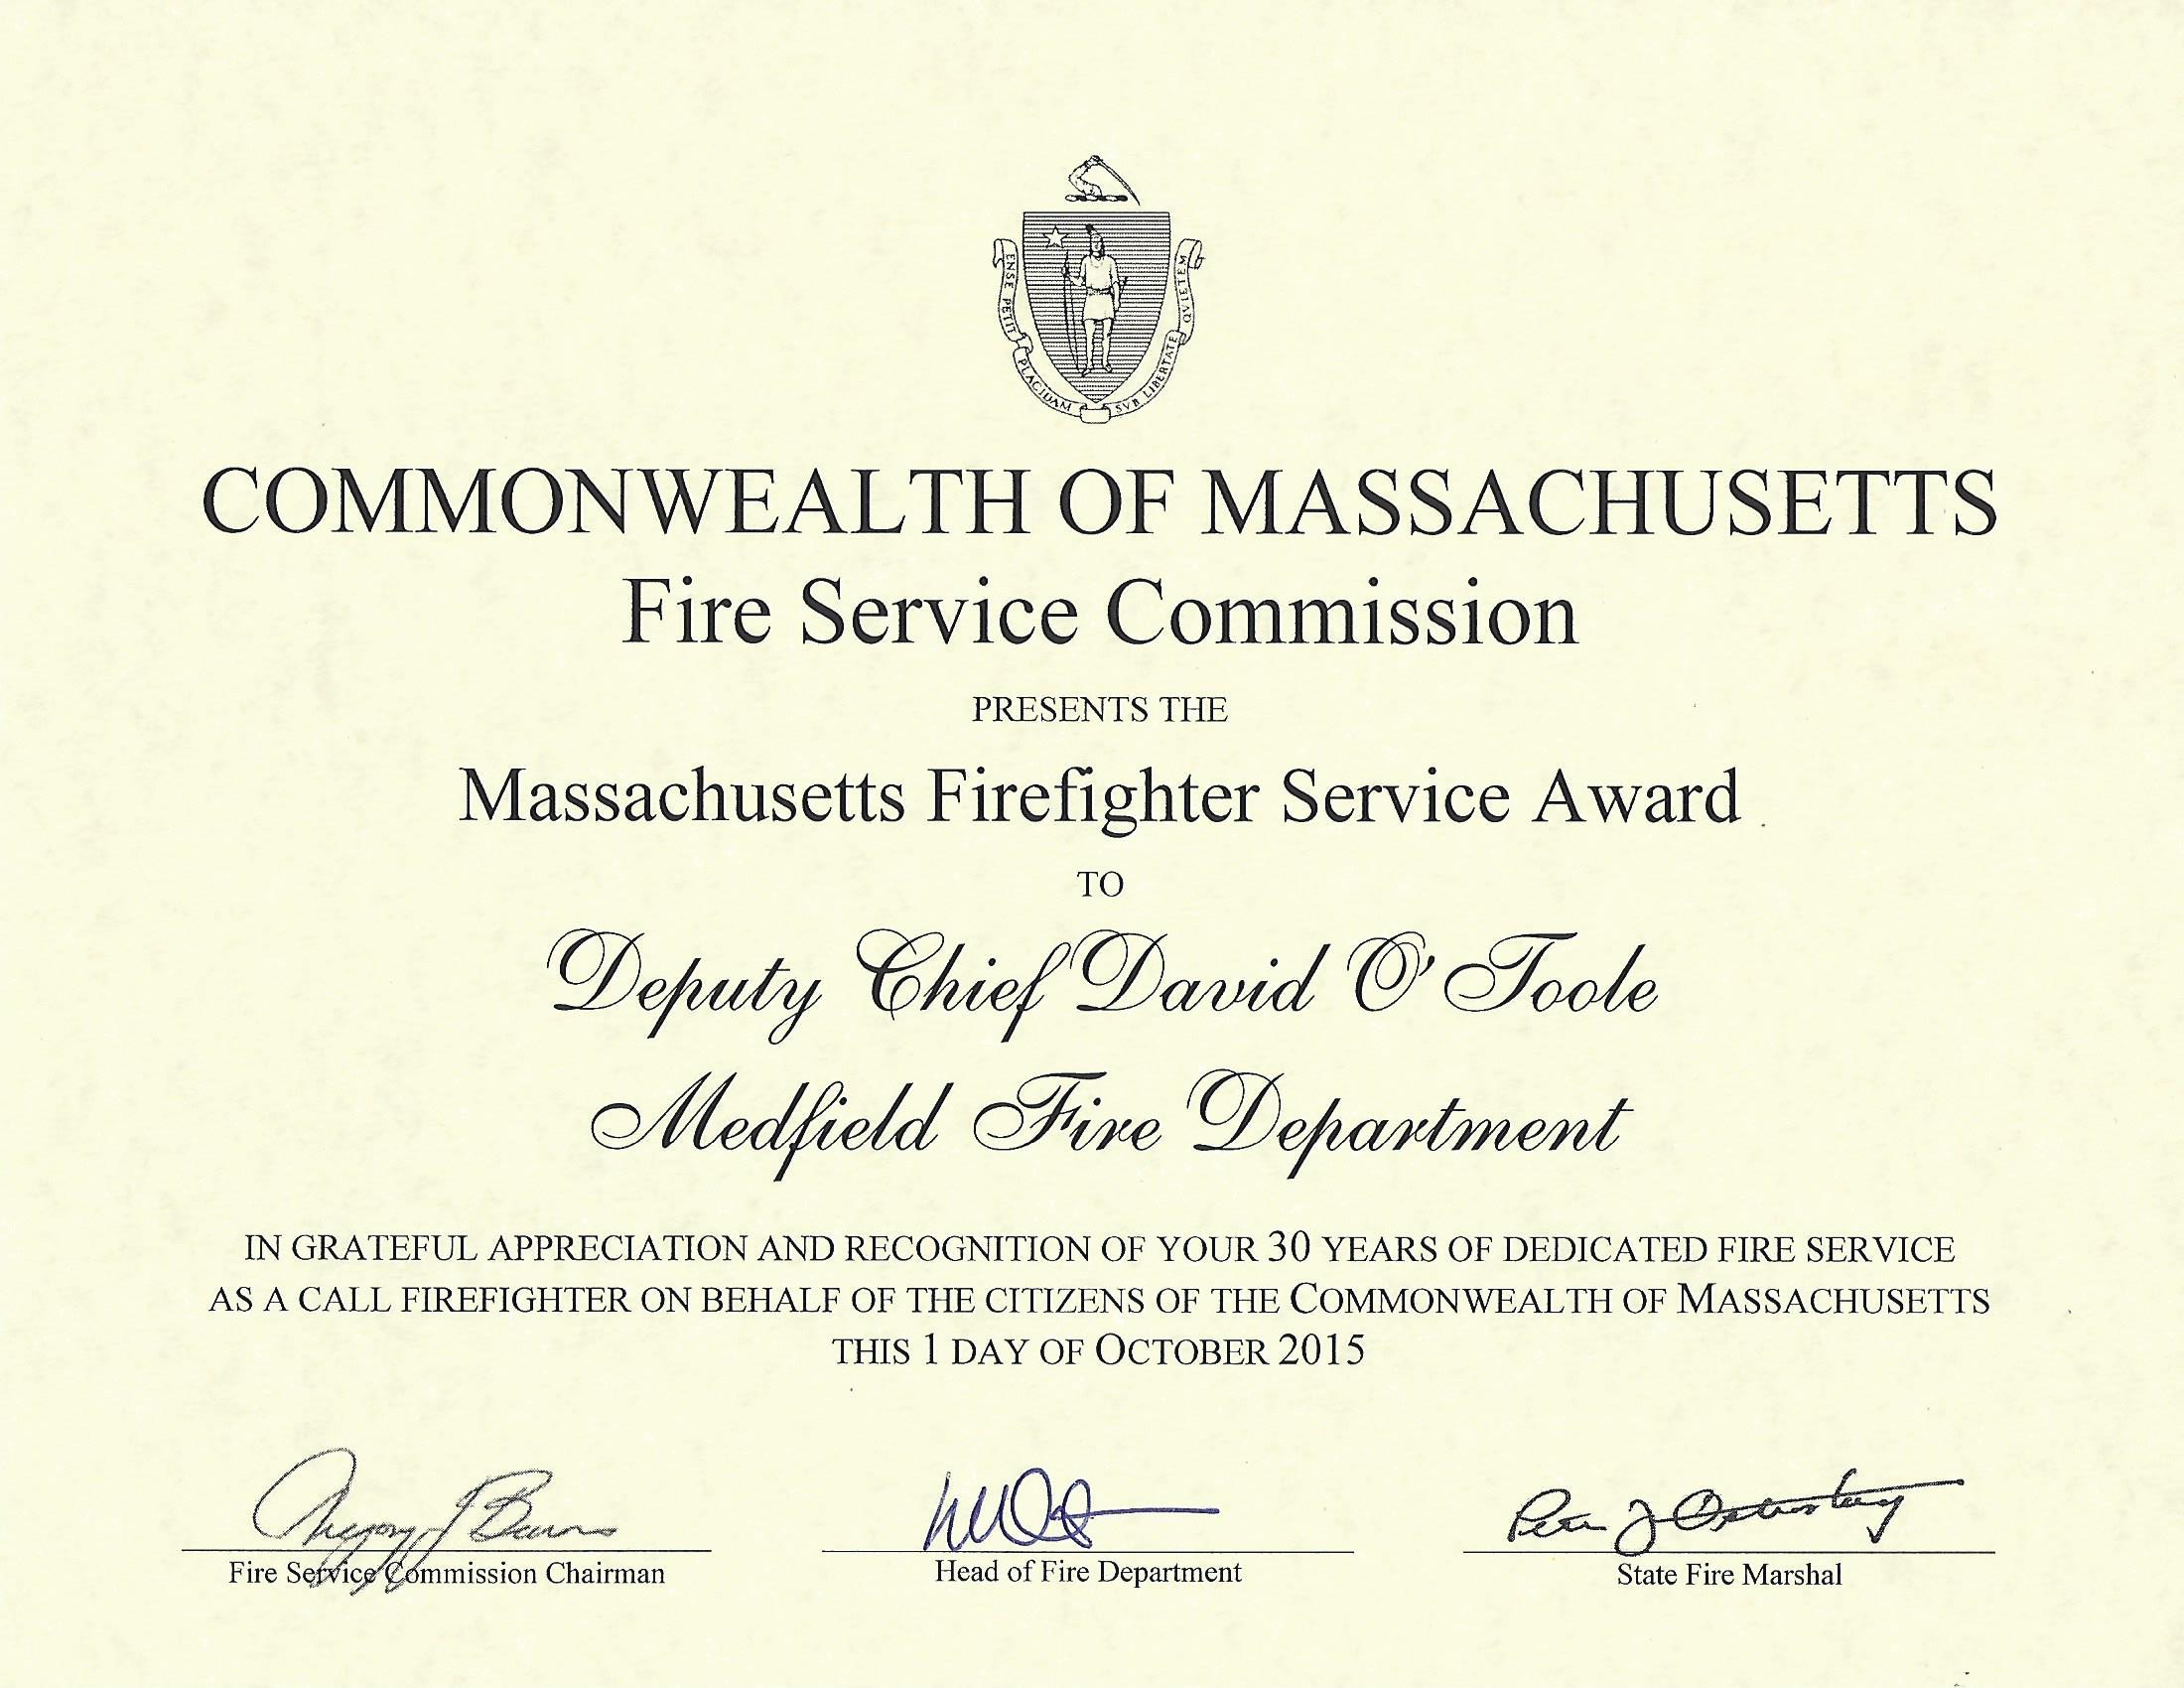 COMMONWEALTH OF MASSACHUSETTS Fire Service Commission PRESENTS THE Massachusetts Firefighter Service Award TO IN GRATEFUL APPRECIATION AND RECOGNJTION OF YOUR 30 YEARS OF DEDICATED FIRE SERVICE AS A CALL FIREFIGHTER ON BEHALF OF THE CITIZENS OF THE COMMONWEALTH OF MASSACHUSETTS THIS 2 DAY OF JANUARY 2019 ~~~ Head of Fire Department State Fire Marshal COMMONWEALTH OF MASSACHUSETTS Fire Service Commission PRESENTS THE Massachusetts Firefighter Service A ward TO IN GRATEFUL APPRECIATION AND RECOGNITION OF YOUR 20 YEARS OF DEDICATED FIRE SERVICE AS A CALL FIREFIGHTER ON BEHALF OF THE CITIZENS OF THE COMMONWEALTH OF MASSACHUSETTS TI-HS 1 DAY OF JULY 2017 ~~ Head of Fire Depattment State Fire Marshal COMMONWEALTH OF MASSACHUSETTS Fire Service Commission PRESENTS THE Massachusetts Firefighter Service A ward TO IN GRATEFUL APPRECIATION AND RECOGNITION OF YOUR 30 YEARS OF DEDICATED FIRE SERVICE AS A CALL FIREFIGHTER ON BEHALF OF THE CITIZENS OF THE COMMONWEALTH OF MASSACHUSETTS THIS 1 DAY OF JULY 2019 (6:._~ Head ofFire Department State Fire Marshal COMMONWEALTH OF MASSACHUSETTS Fire Service Commission PRESENTS THE Massachusetts Firefighter Service Award TO IN GRATEFUL APPRECIATION AND RECOGNITION OF YOUR 25 YEARS OF DEDICATED FIRE SERVICE AS A CALL FIREFIGHTER ON BEHALF OF THE CITIZENS OF THE COMMONWEALTH OF MASSACHUSETTS THIS 1 DAY OF JANUARY 2017 a-~ Head of Fire Department State Fire Marshal COMMONWEALTH OF MASSACHUSETTS Fire Service Commission PRESENTS THE Massachusetts Firefighter Service Award . TO P.bejudjj ~fue/P.bavid ({!J} cffode d#~~ IN GRATEFUL APPRECIATION AND RECOGNITION OF YOUR 30 YEARS OF DEDICATED FIRE SERVICE AS A CALL FIREFIGHTER ON BEHALF OF THE CITIZENS OF THE COMMONWEALTH OF MASSACHUSETTS THIS 1 DAY OF OCTOBER 2015 ~-- /.6:--~~ Head of Fire Department State Fire Marshal